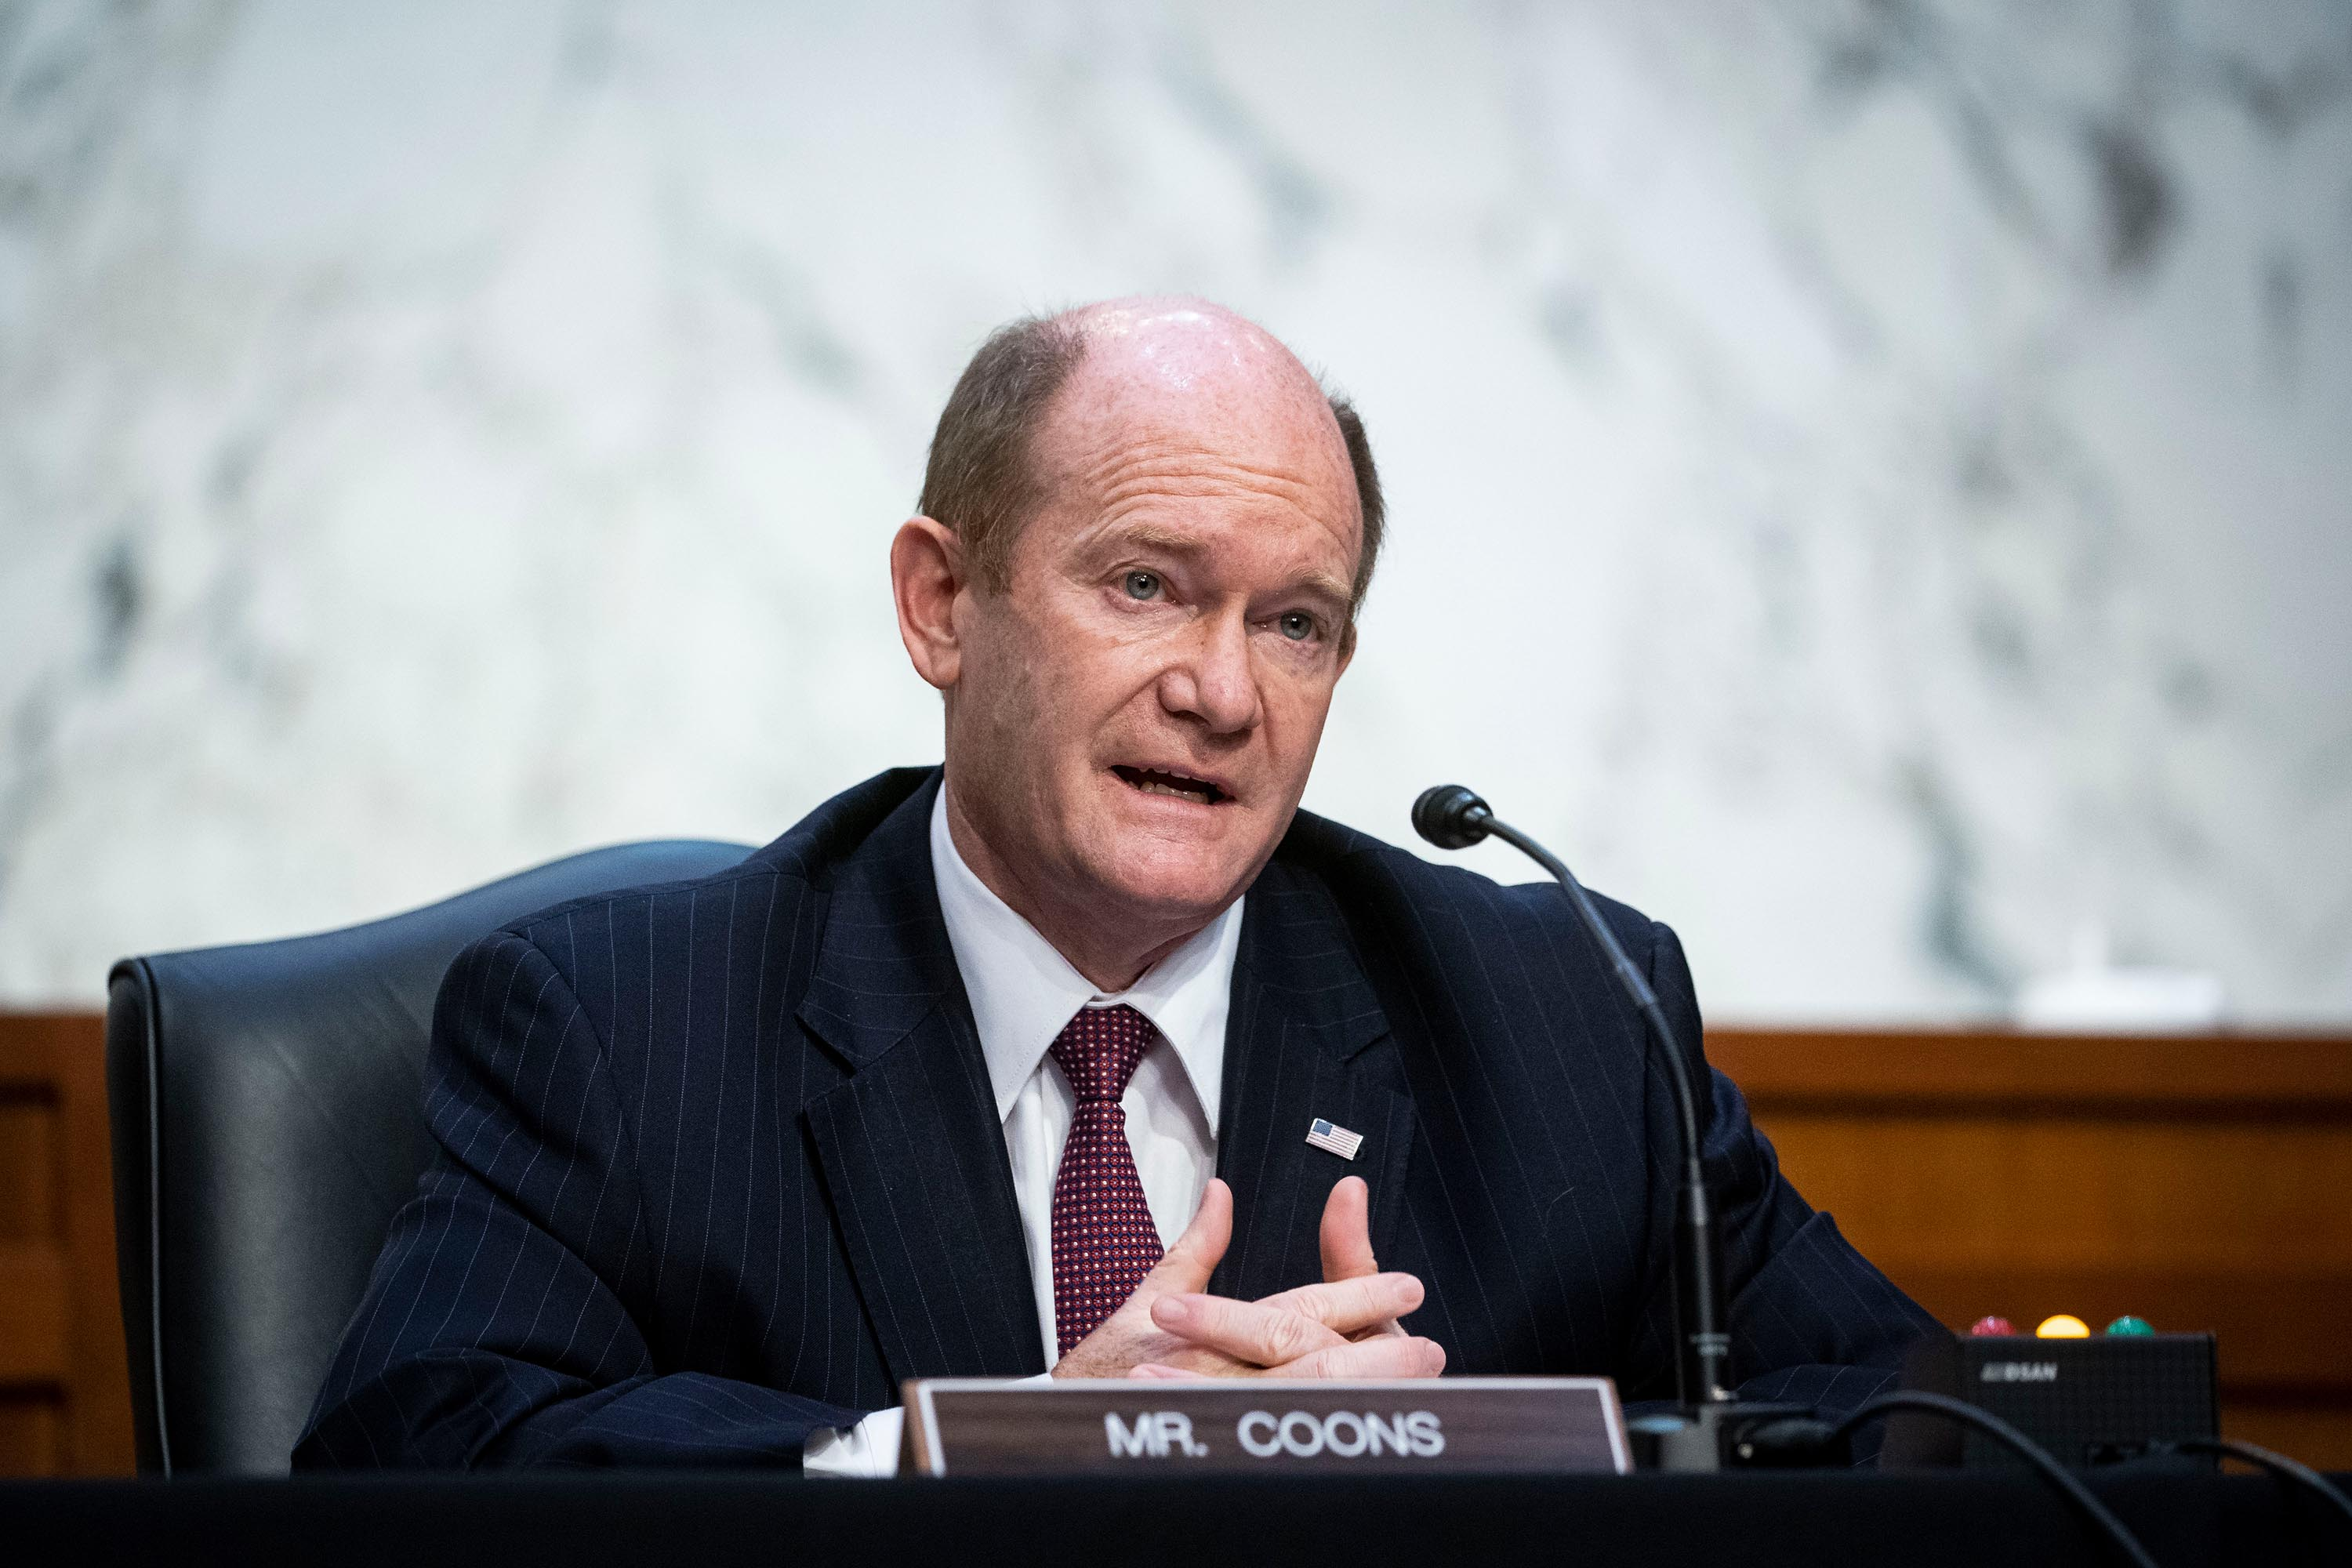 Coons breaks with Pelosi in supporting equal representation to investigate Capitol attack